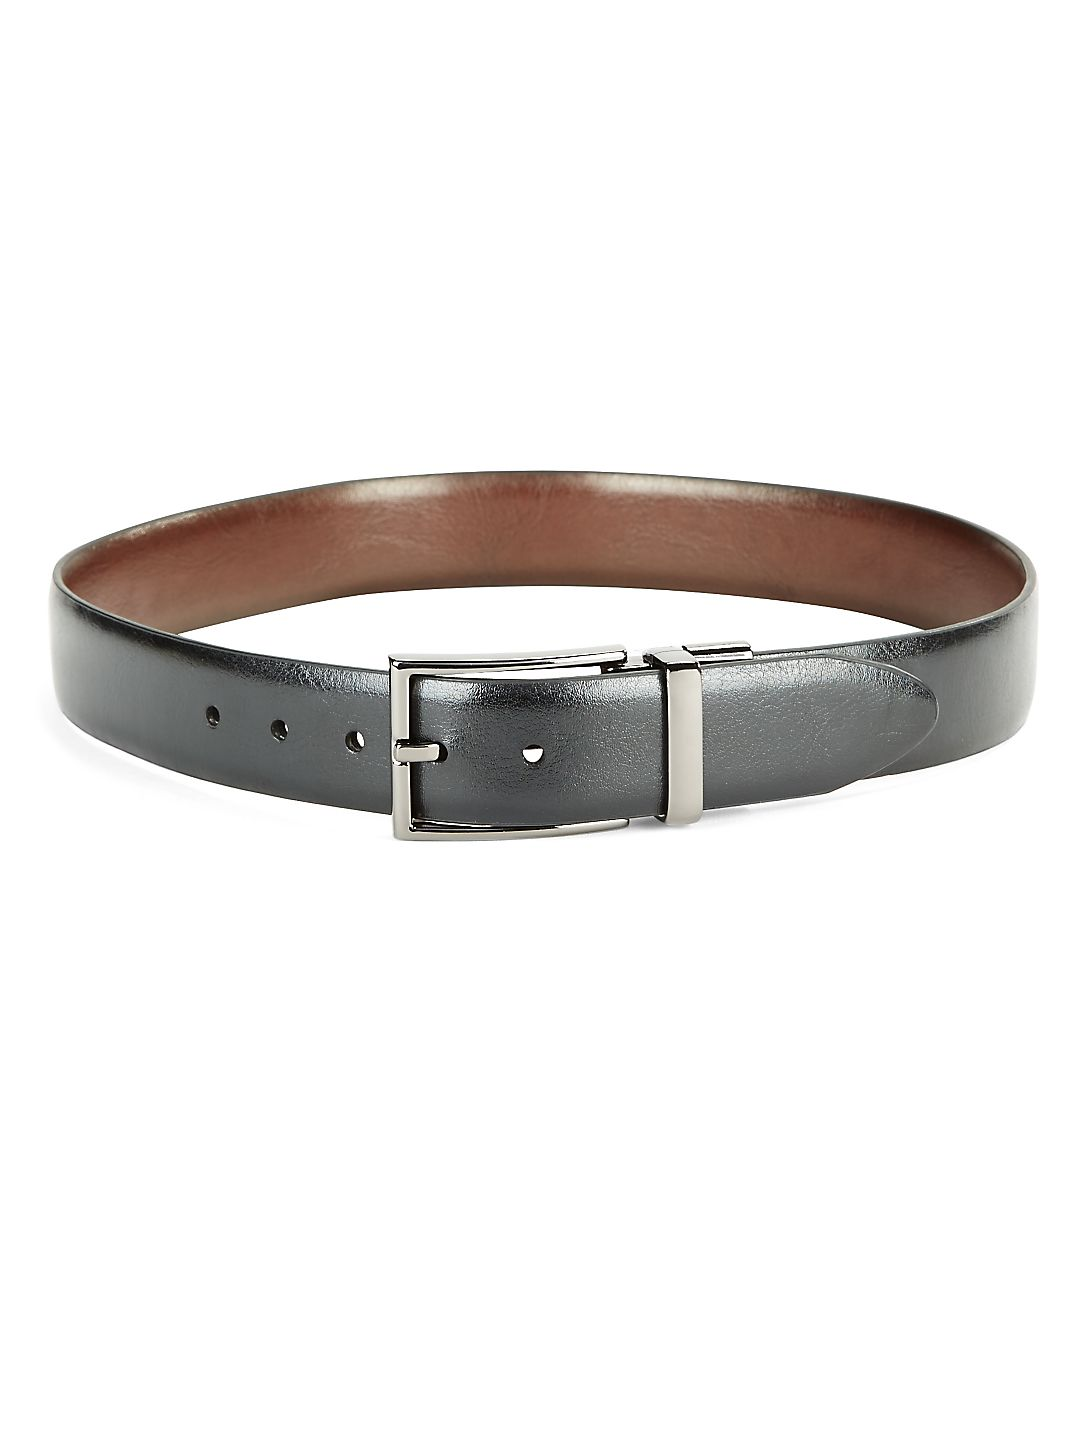 Boy's Leather Belt